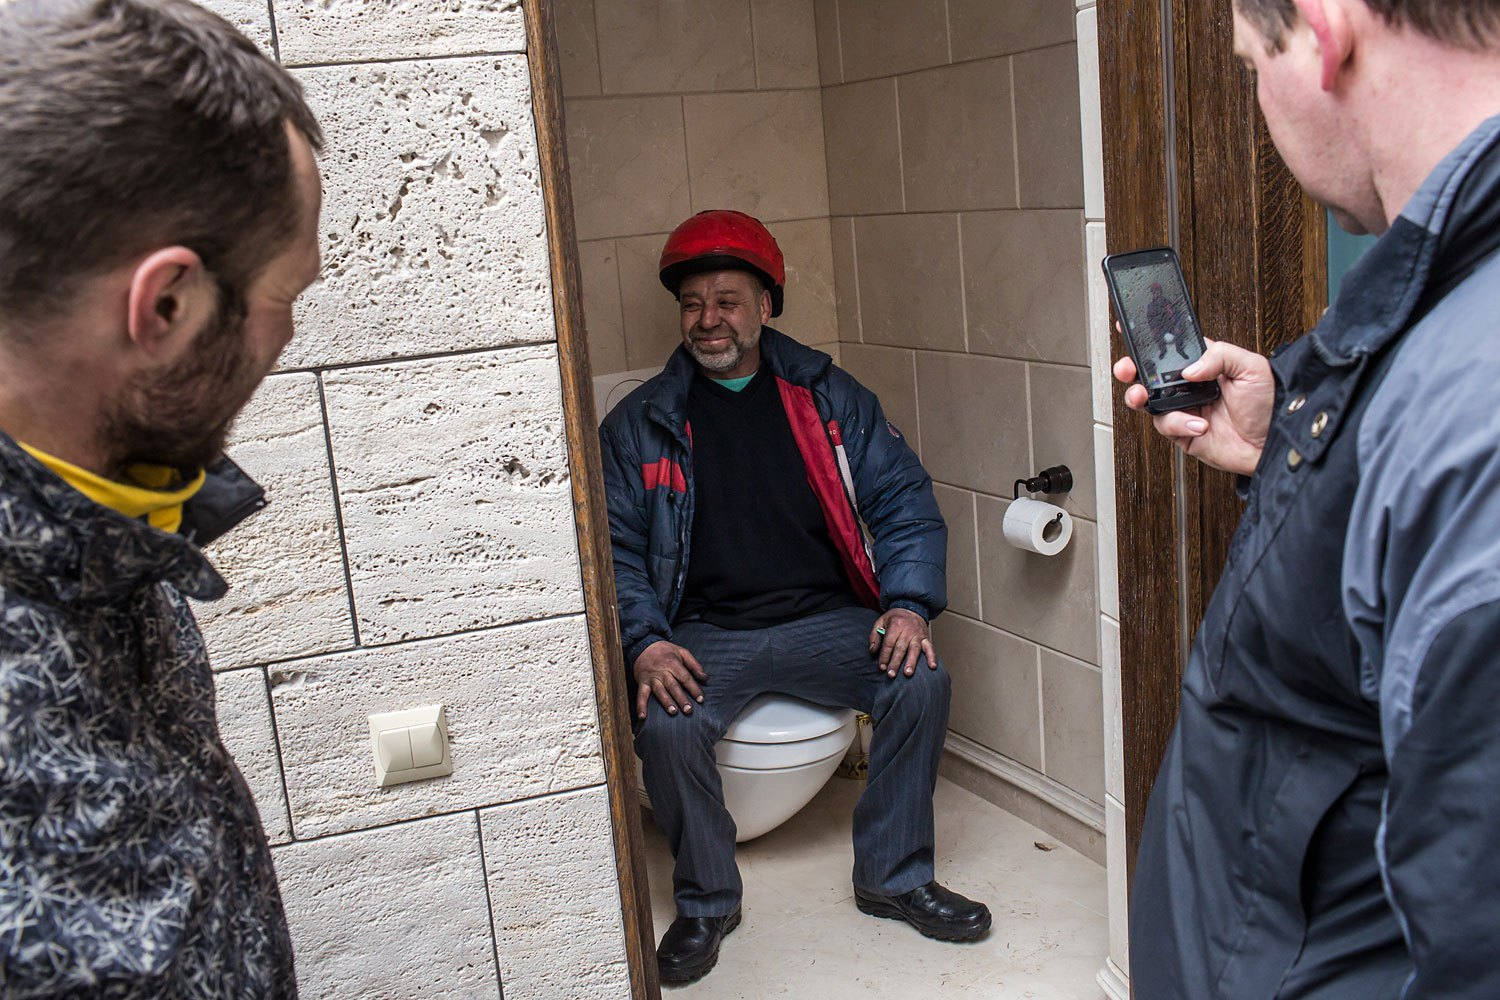 A man poses for a photo on a toilet.